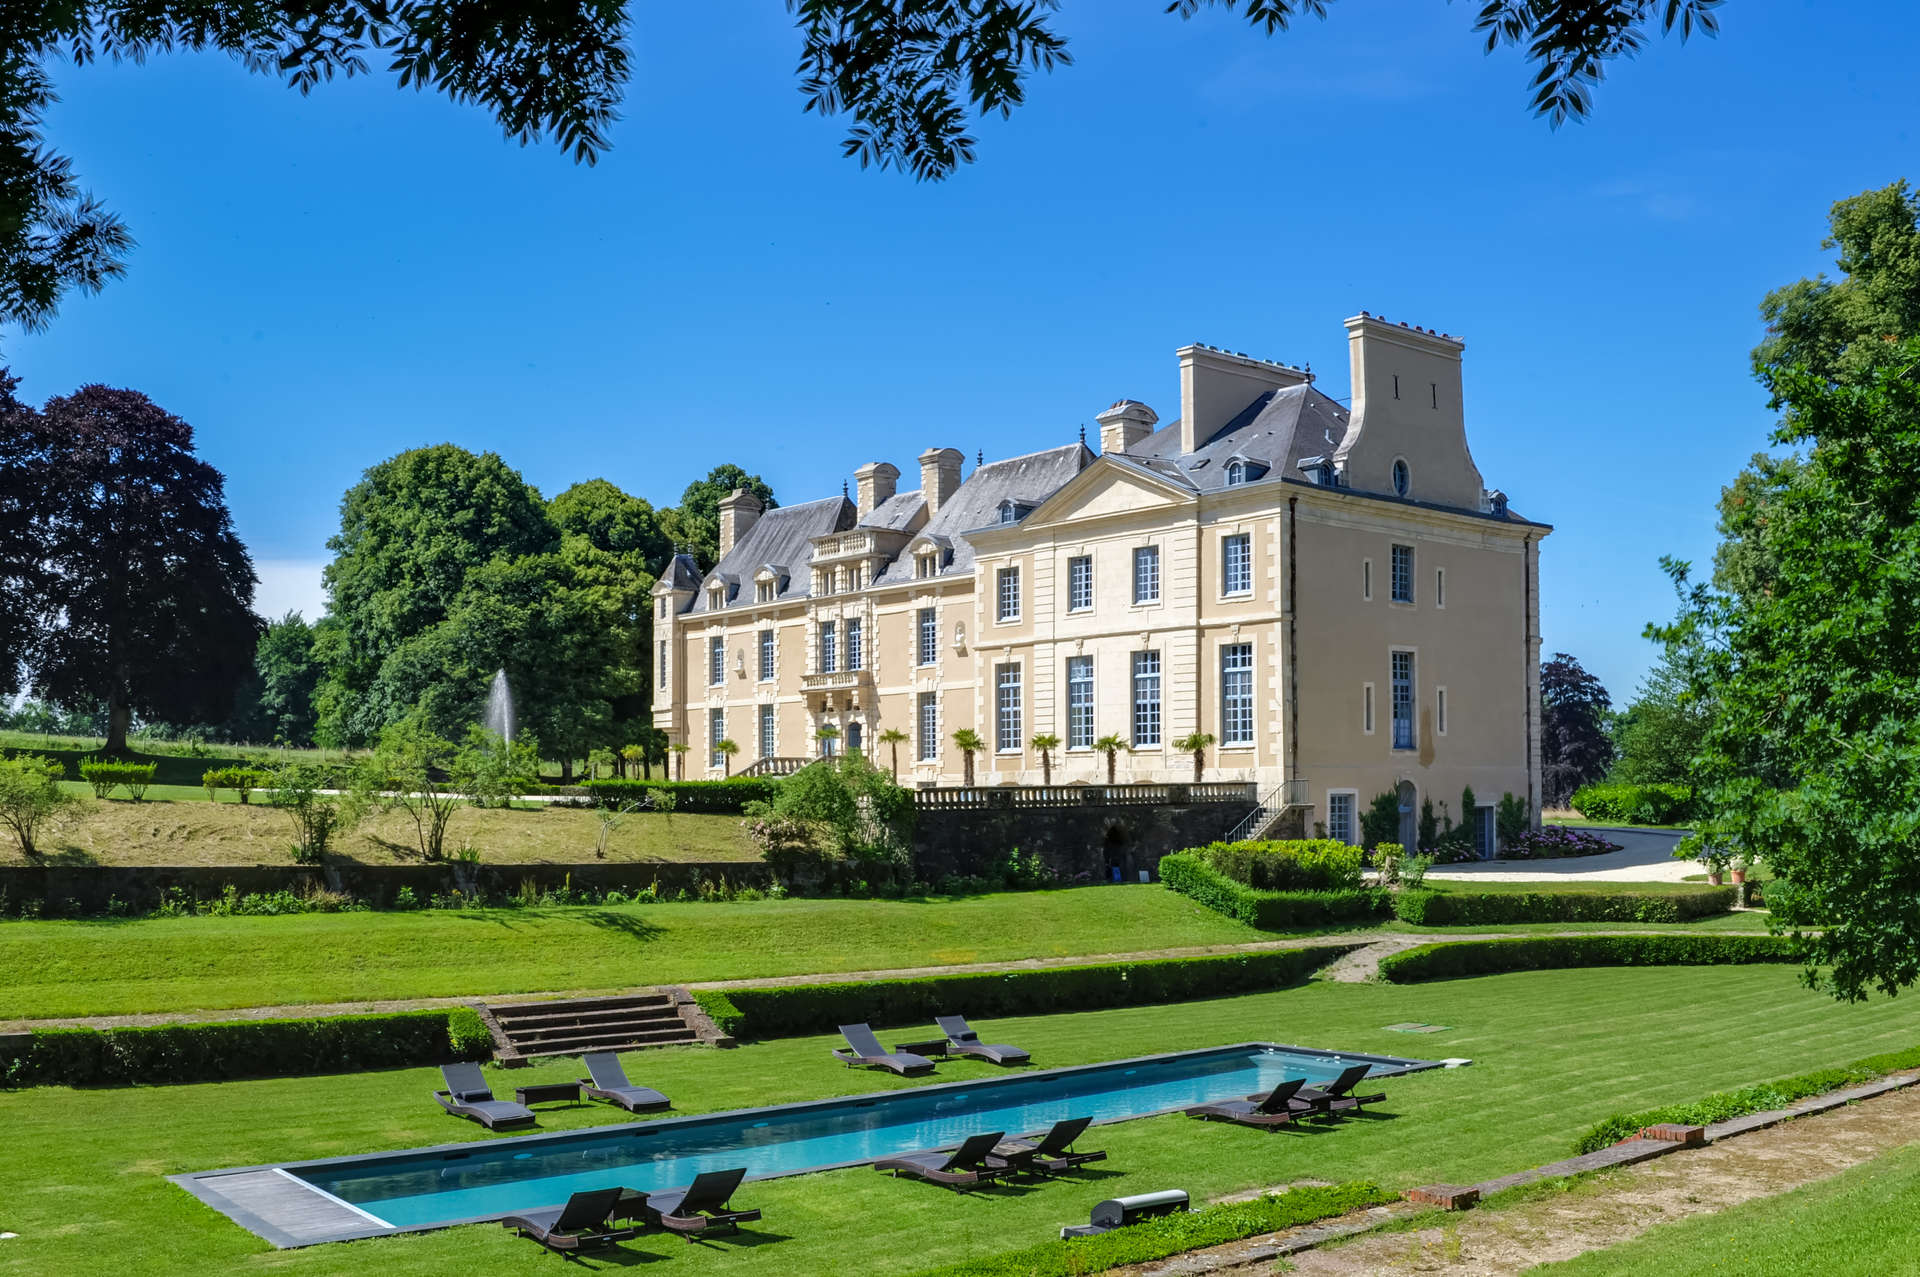 Luxury vacation rentals europe - France - Normandy - Calvadosfrance - Chateau de Calvados - Image 1/23